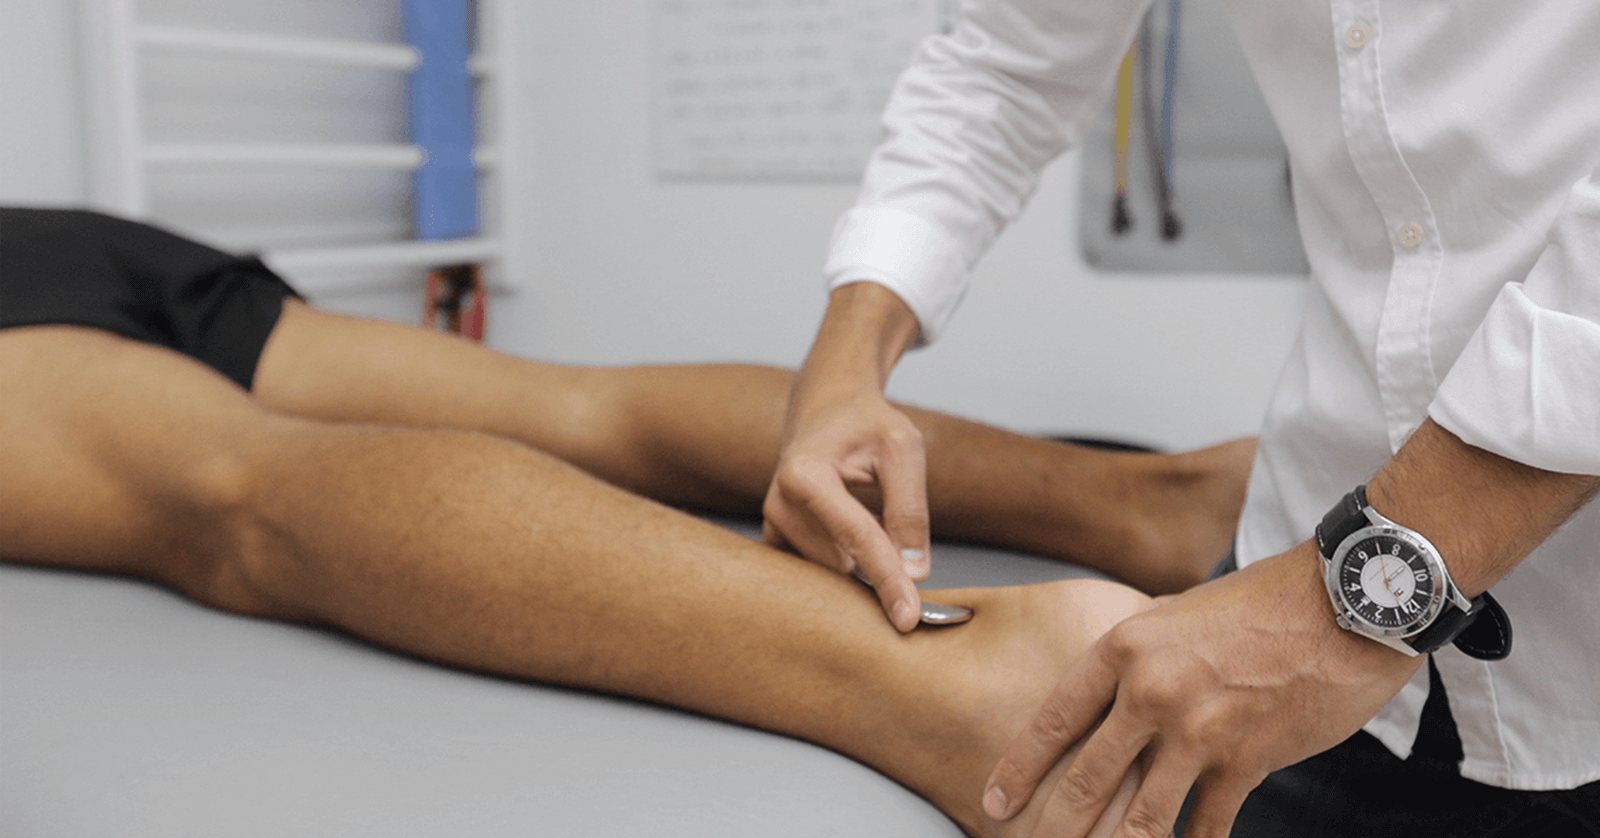 Doctor treating patient's ankle